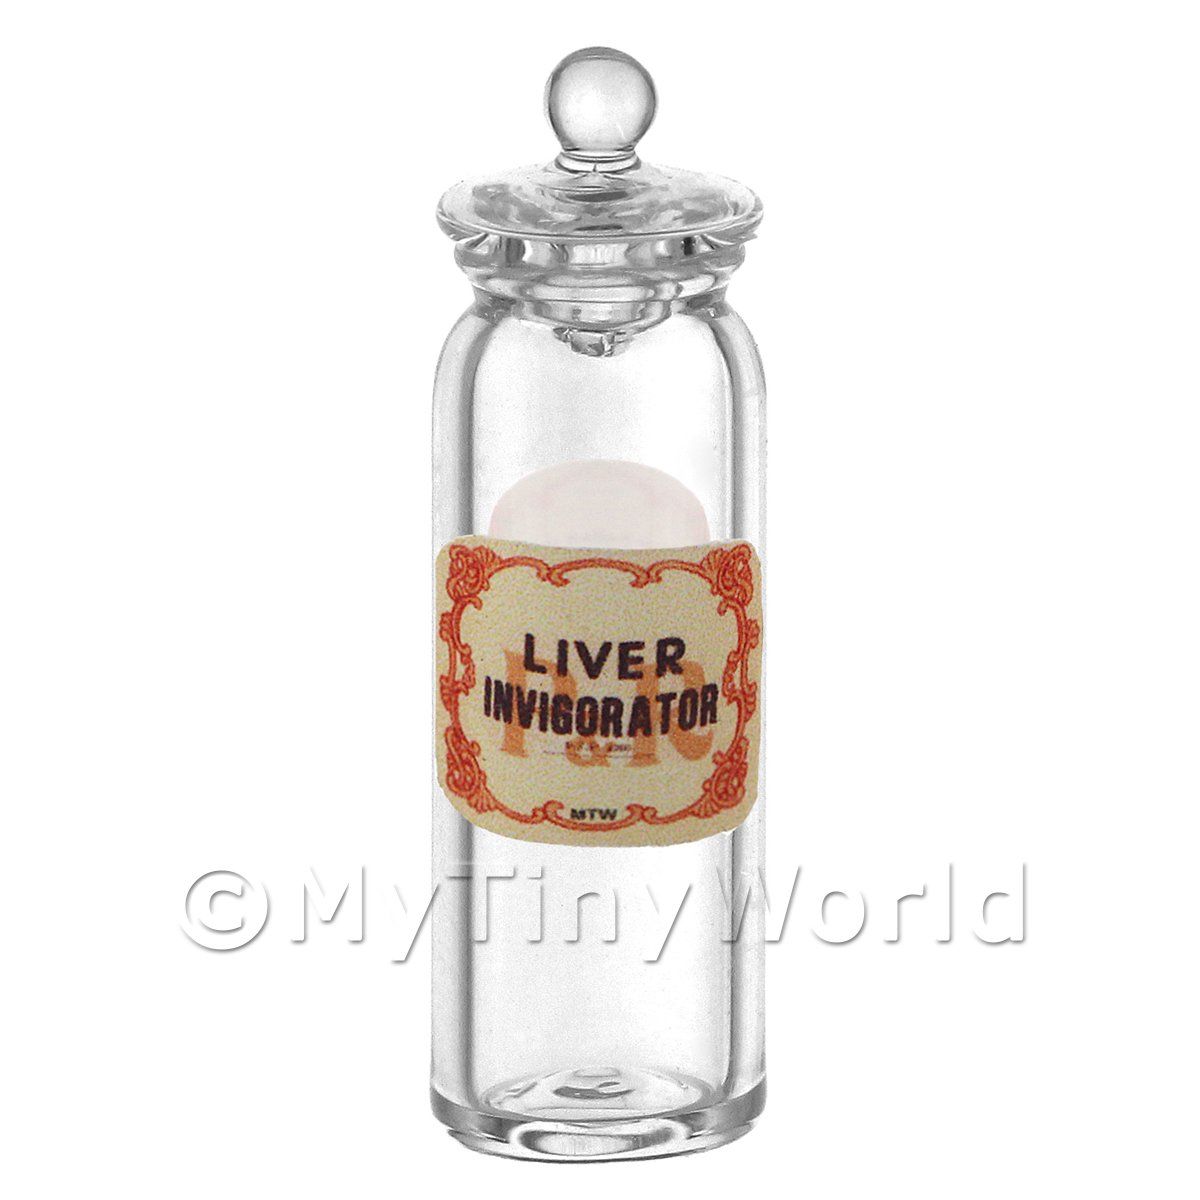 Miniature Liver Invigorator Glass Apothecary Jar